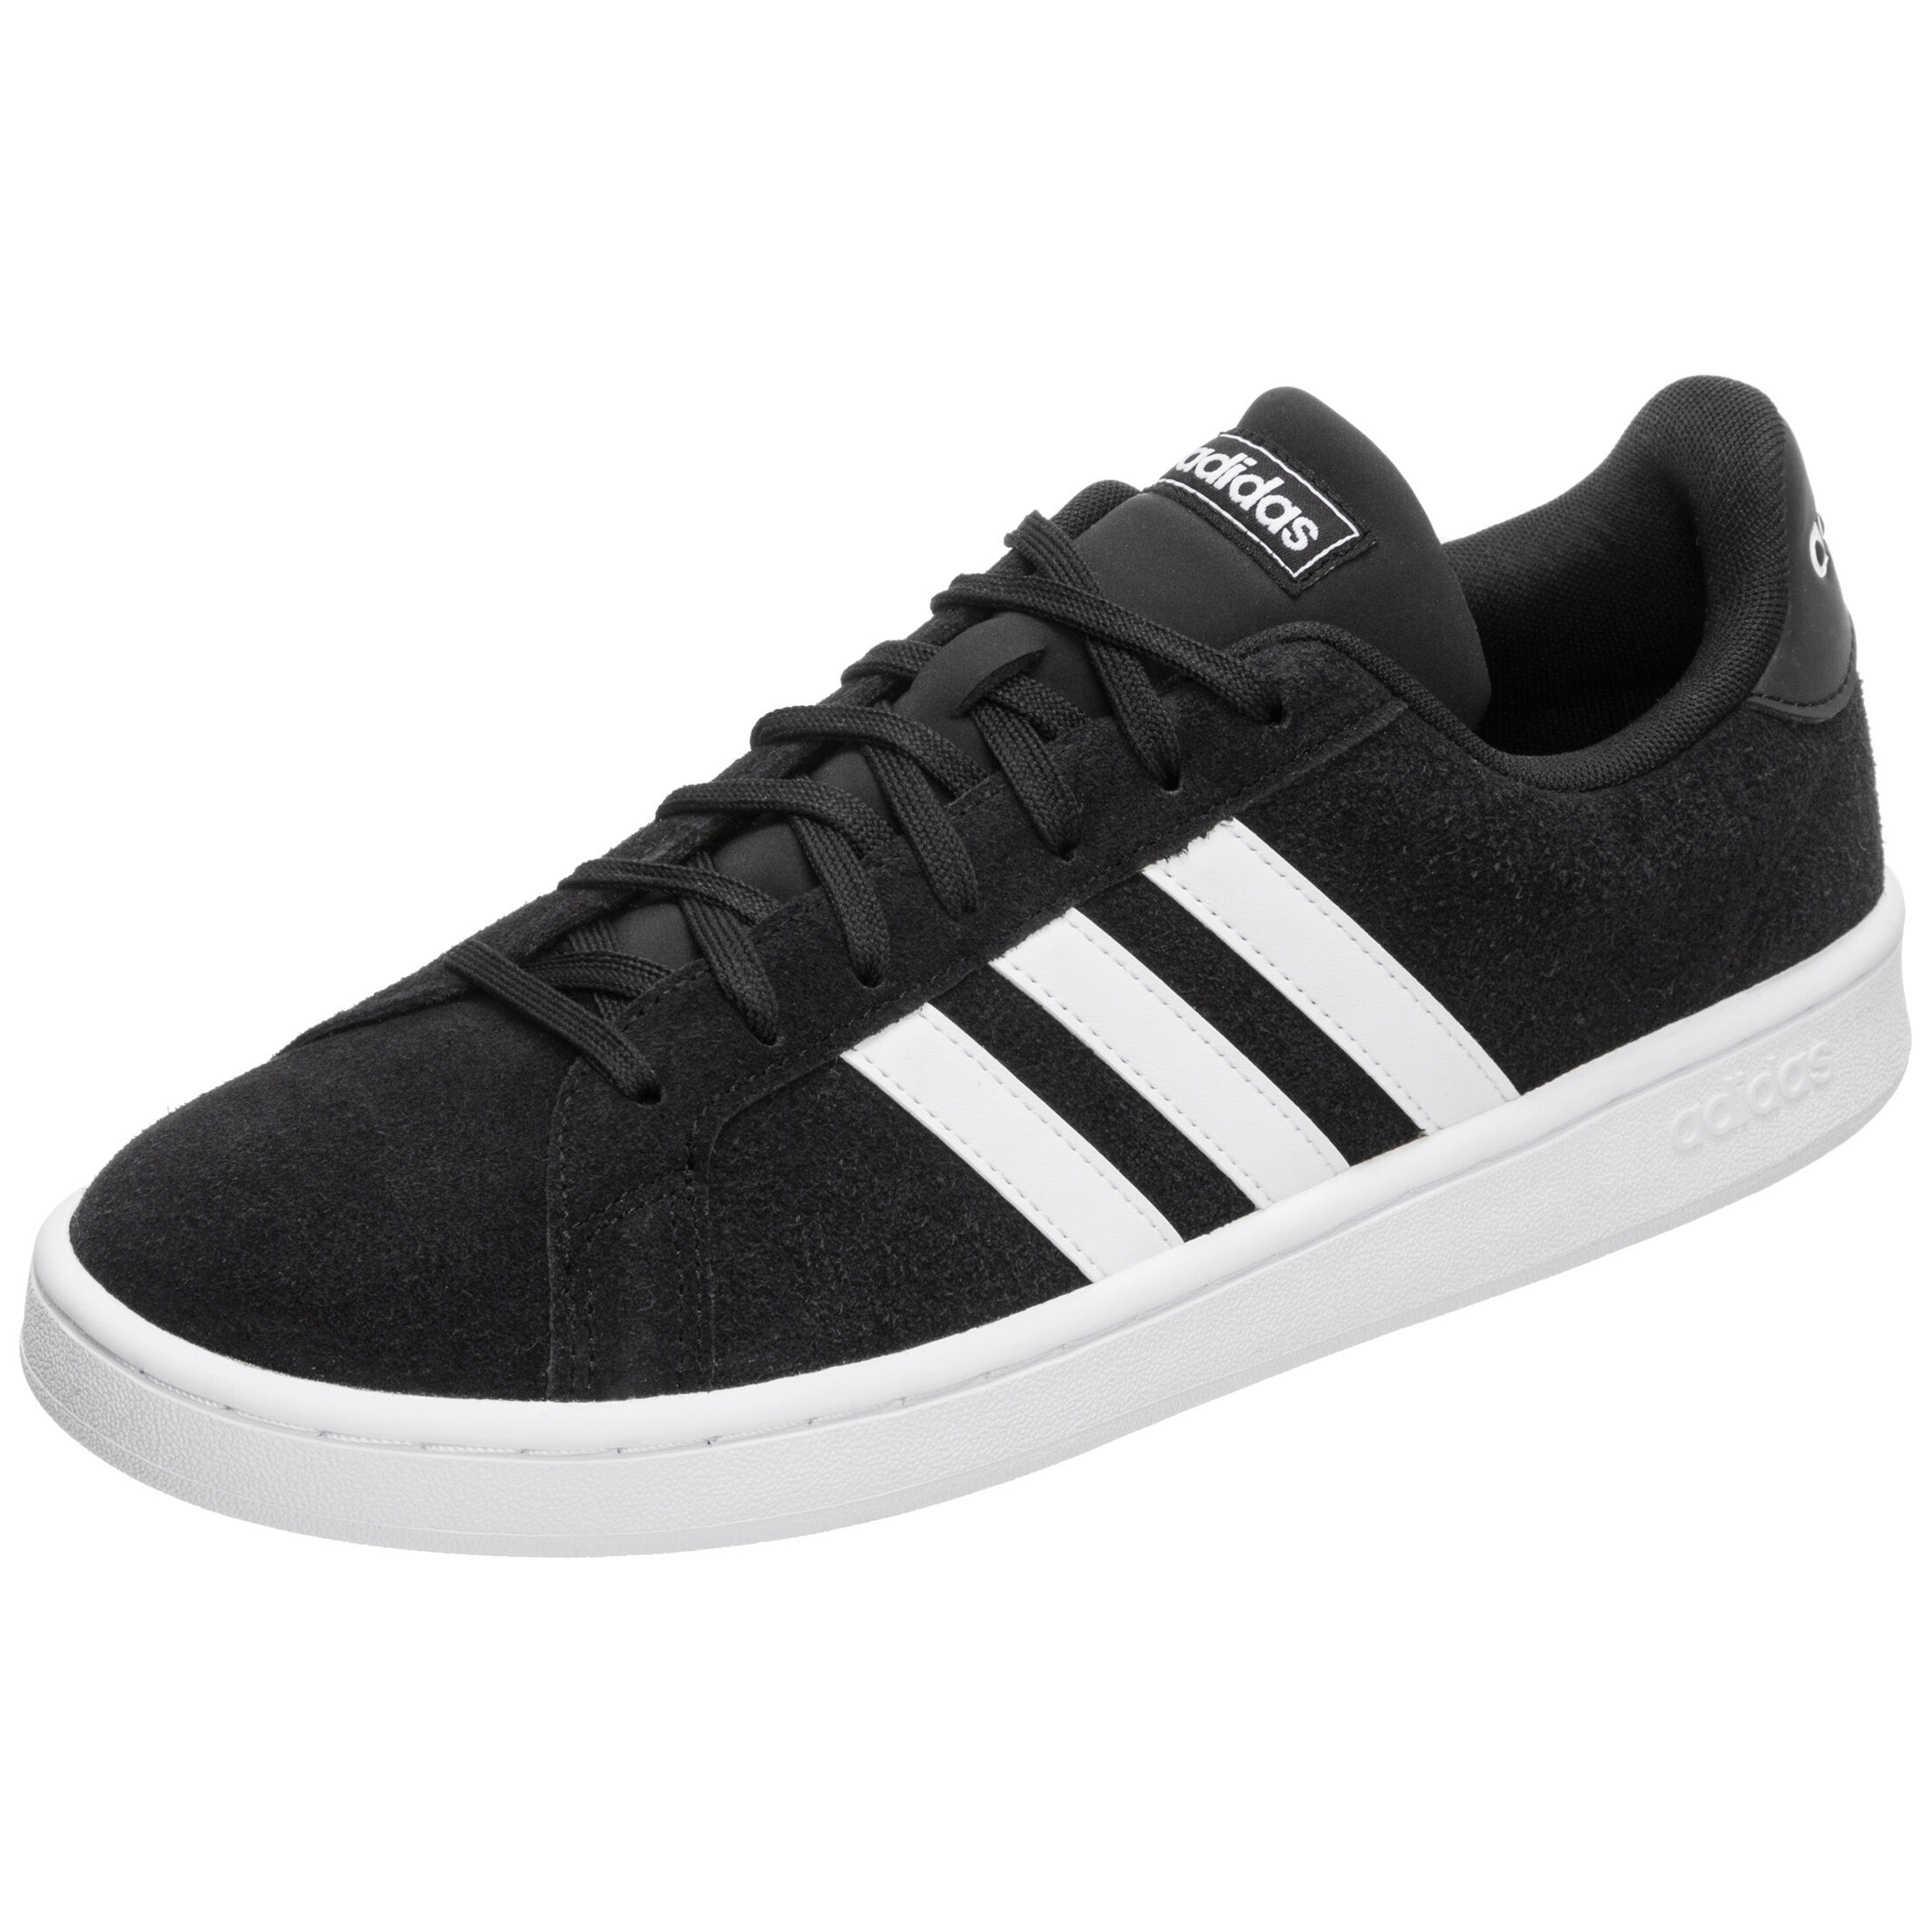 adidas Sneaker   Sneaker Shop Lifestyle bei OUTFITTER